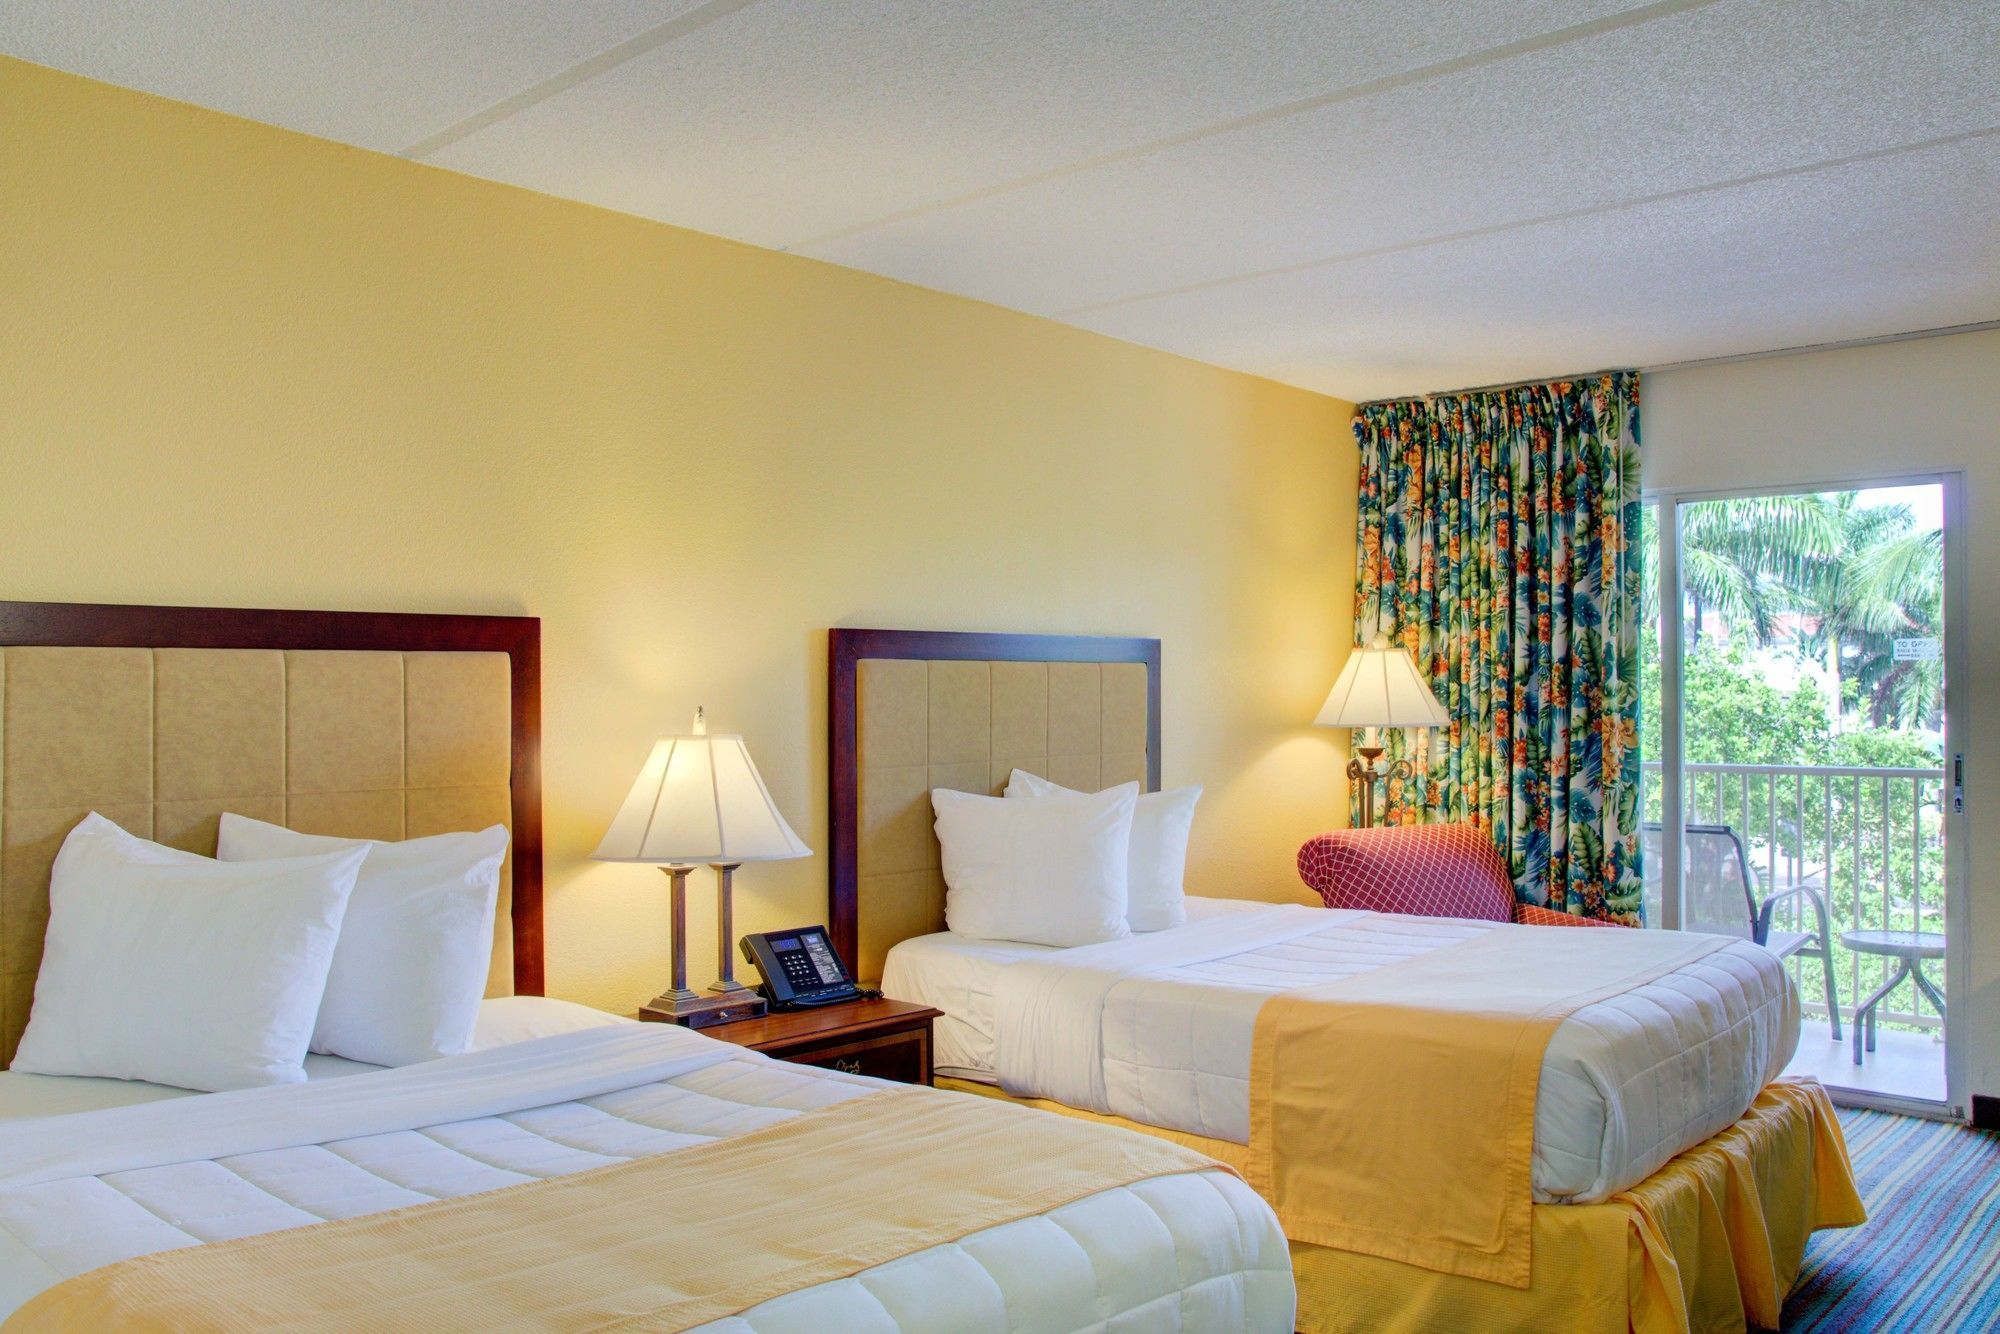 Hutchinson Island Plaza Hotel and Suites in Ft Pierce, FL